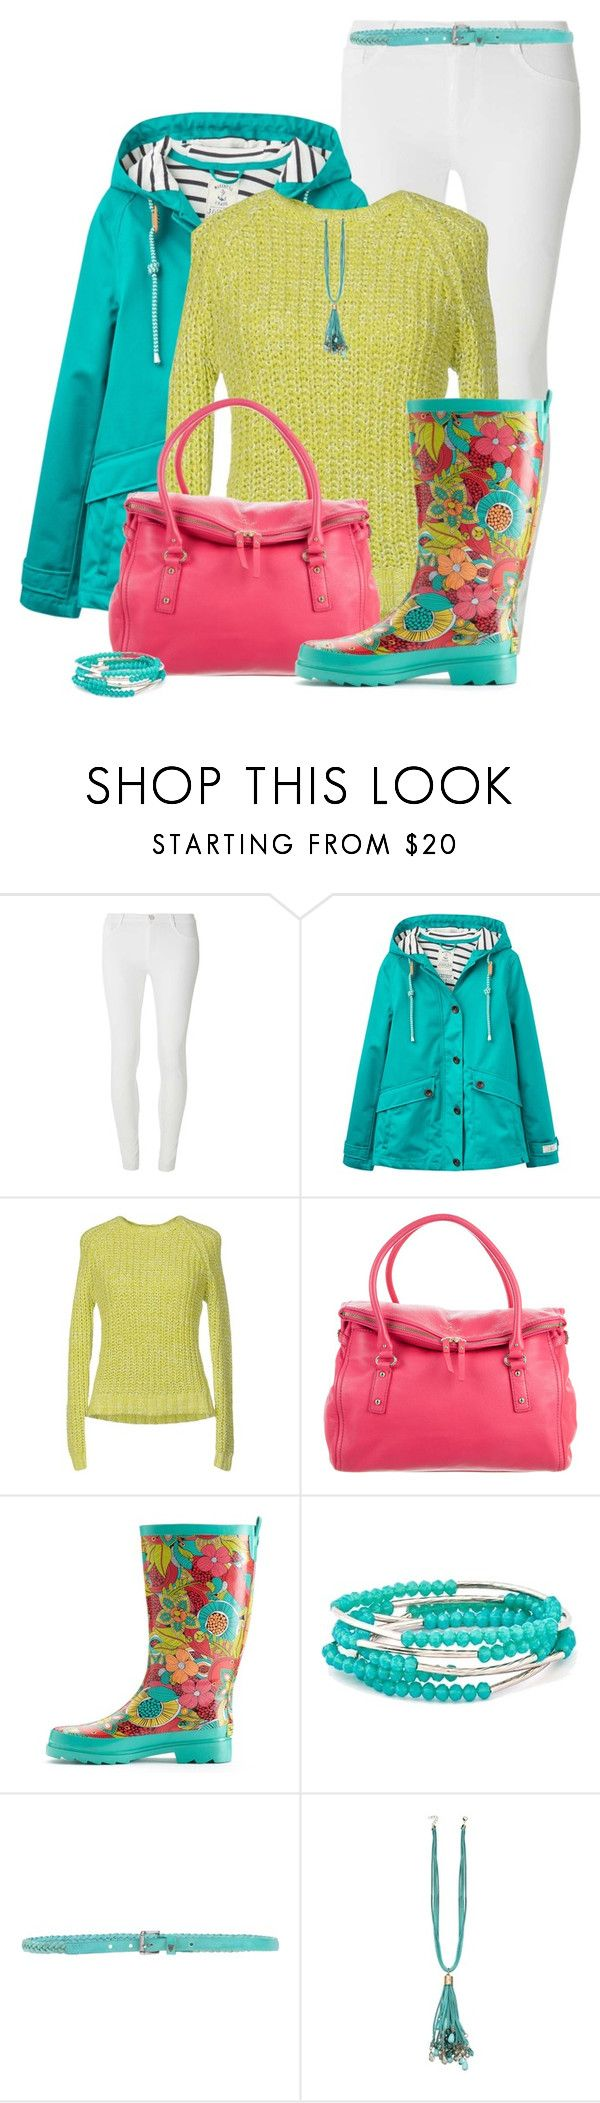 """""""Rain Coat and Boots"""" by cathy0402 ❤ liked on Polyvore featuring Dorothy Perkins, Joules, Roberto Collina, Kate Spade, Western Chief, Chrysalis and HTC"""